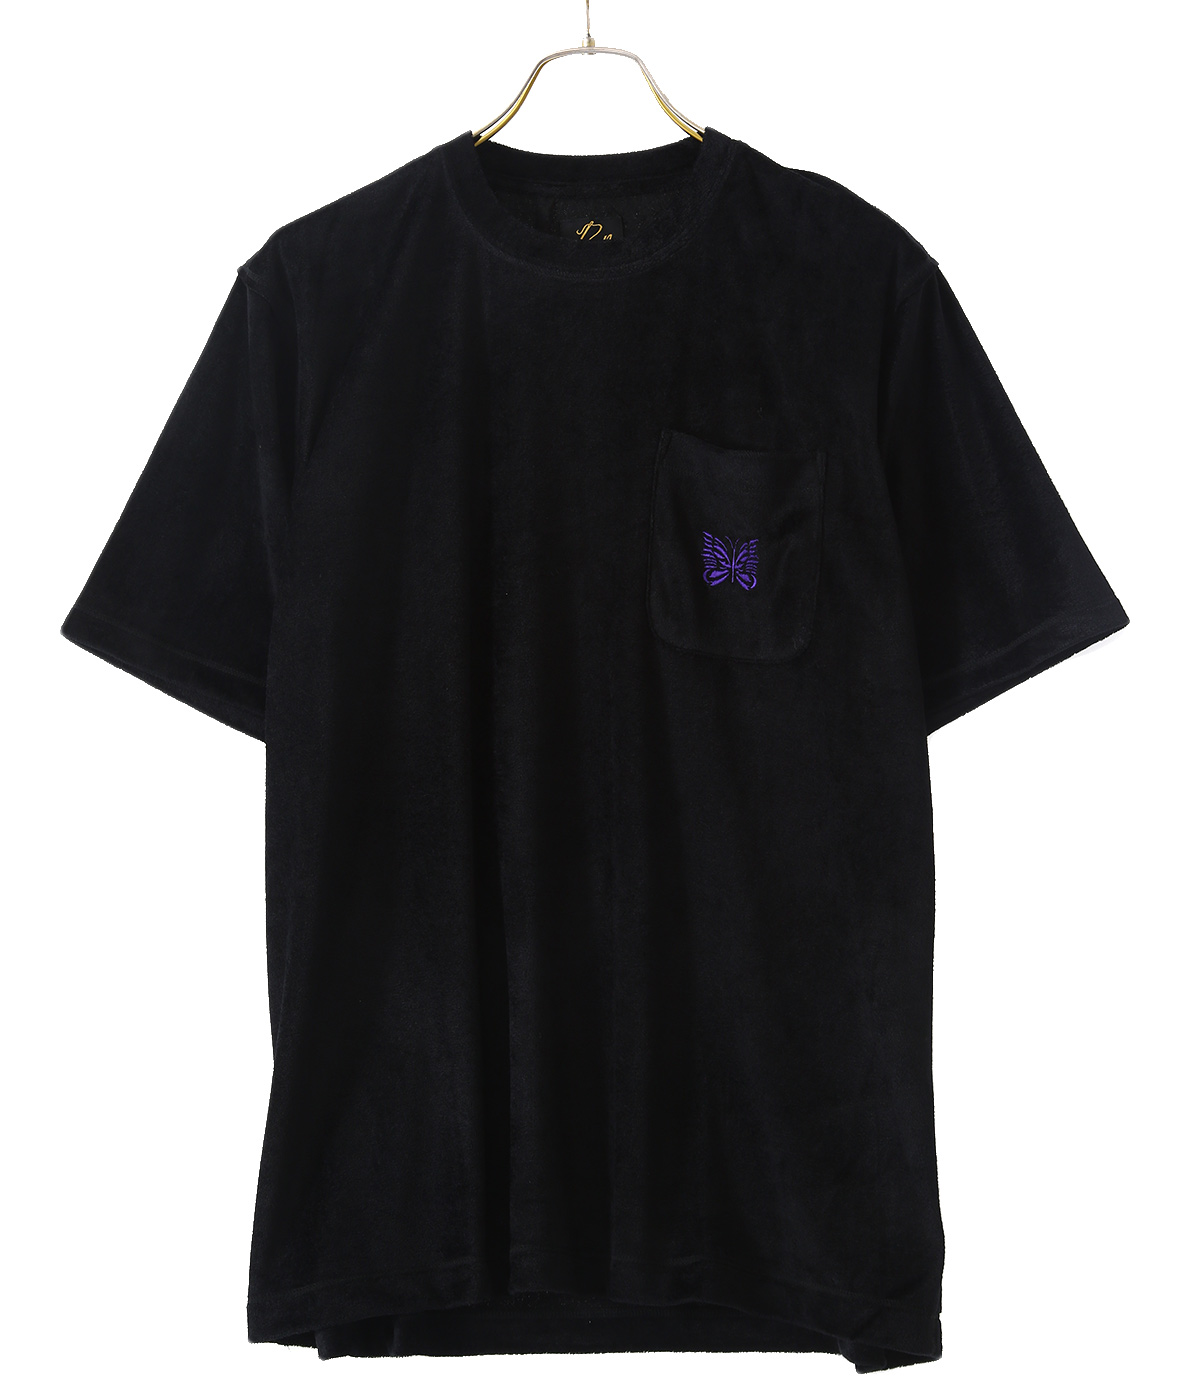 【レディース】S/S Papillon Emb. Pocket Tee - R/Pe Velour